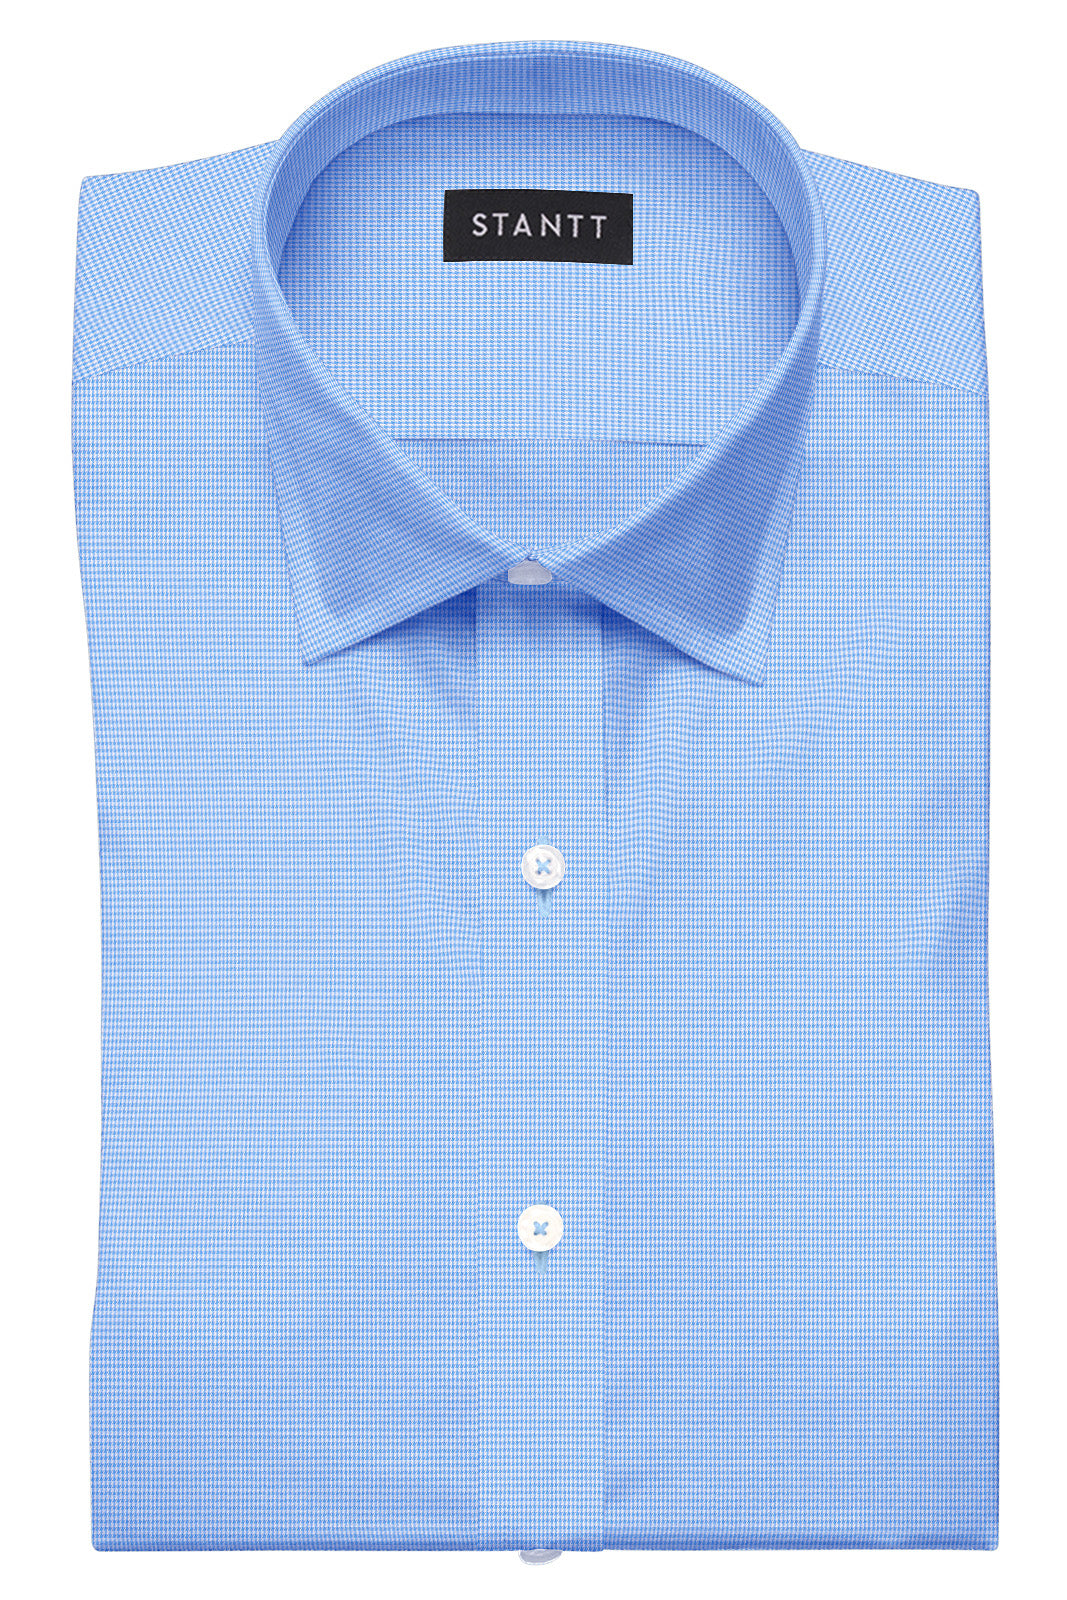 Wrinkle-Resistant French Blue Houndstooth: Modified-Spread Collar, French Cuff